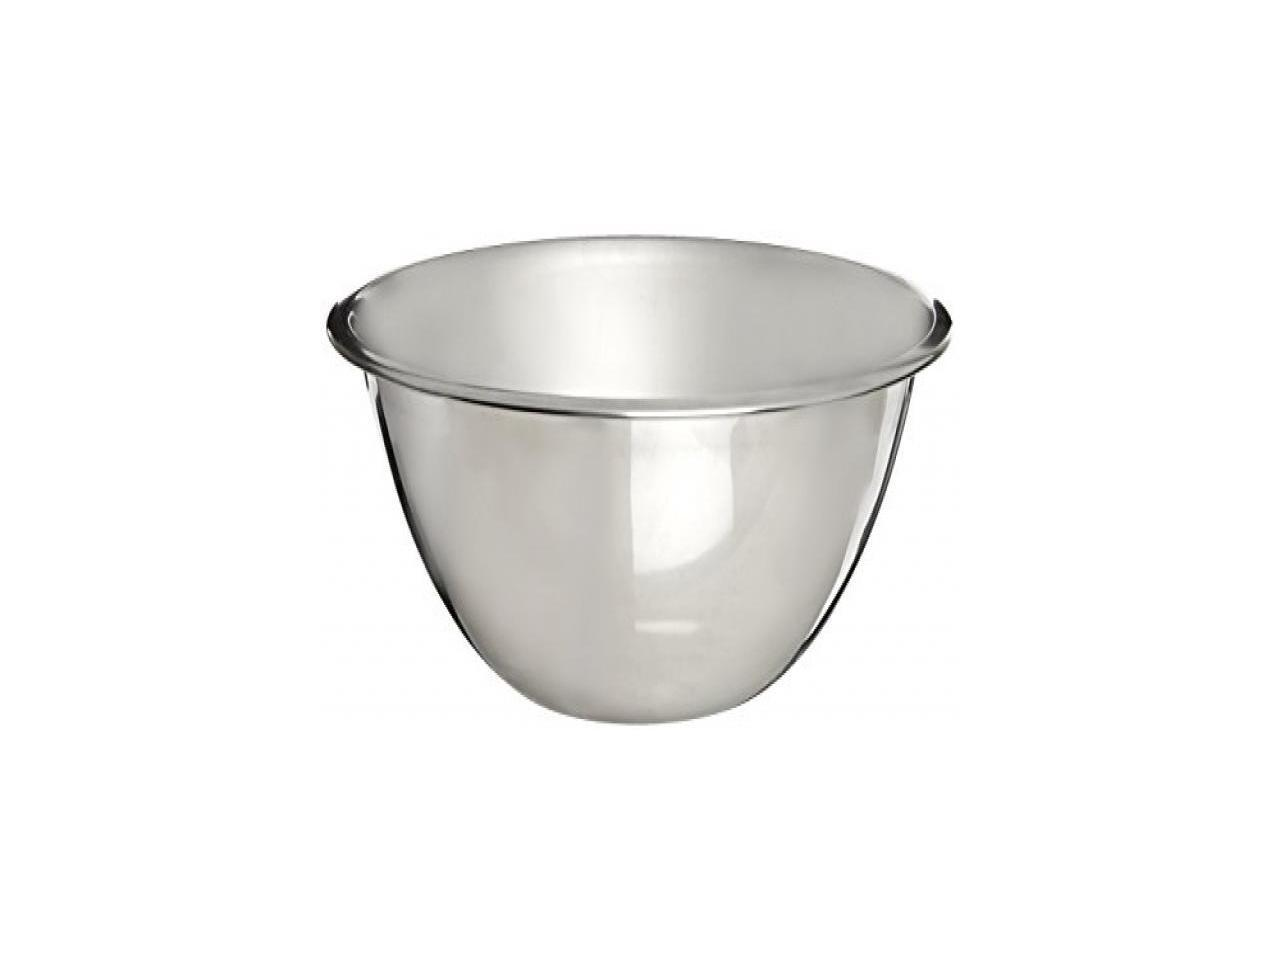 CRESTWARE MBR05 Mixing Bowl,Stainless Steel,5 qt.